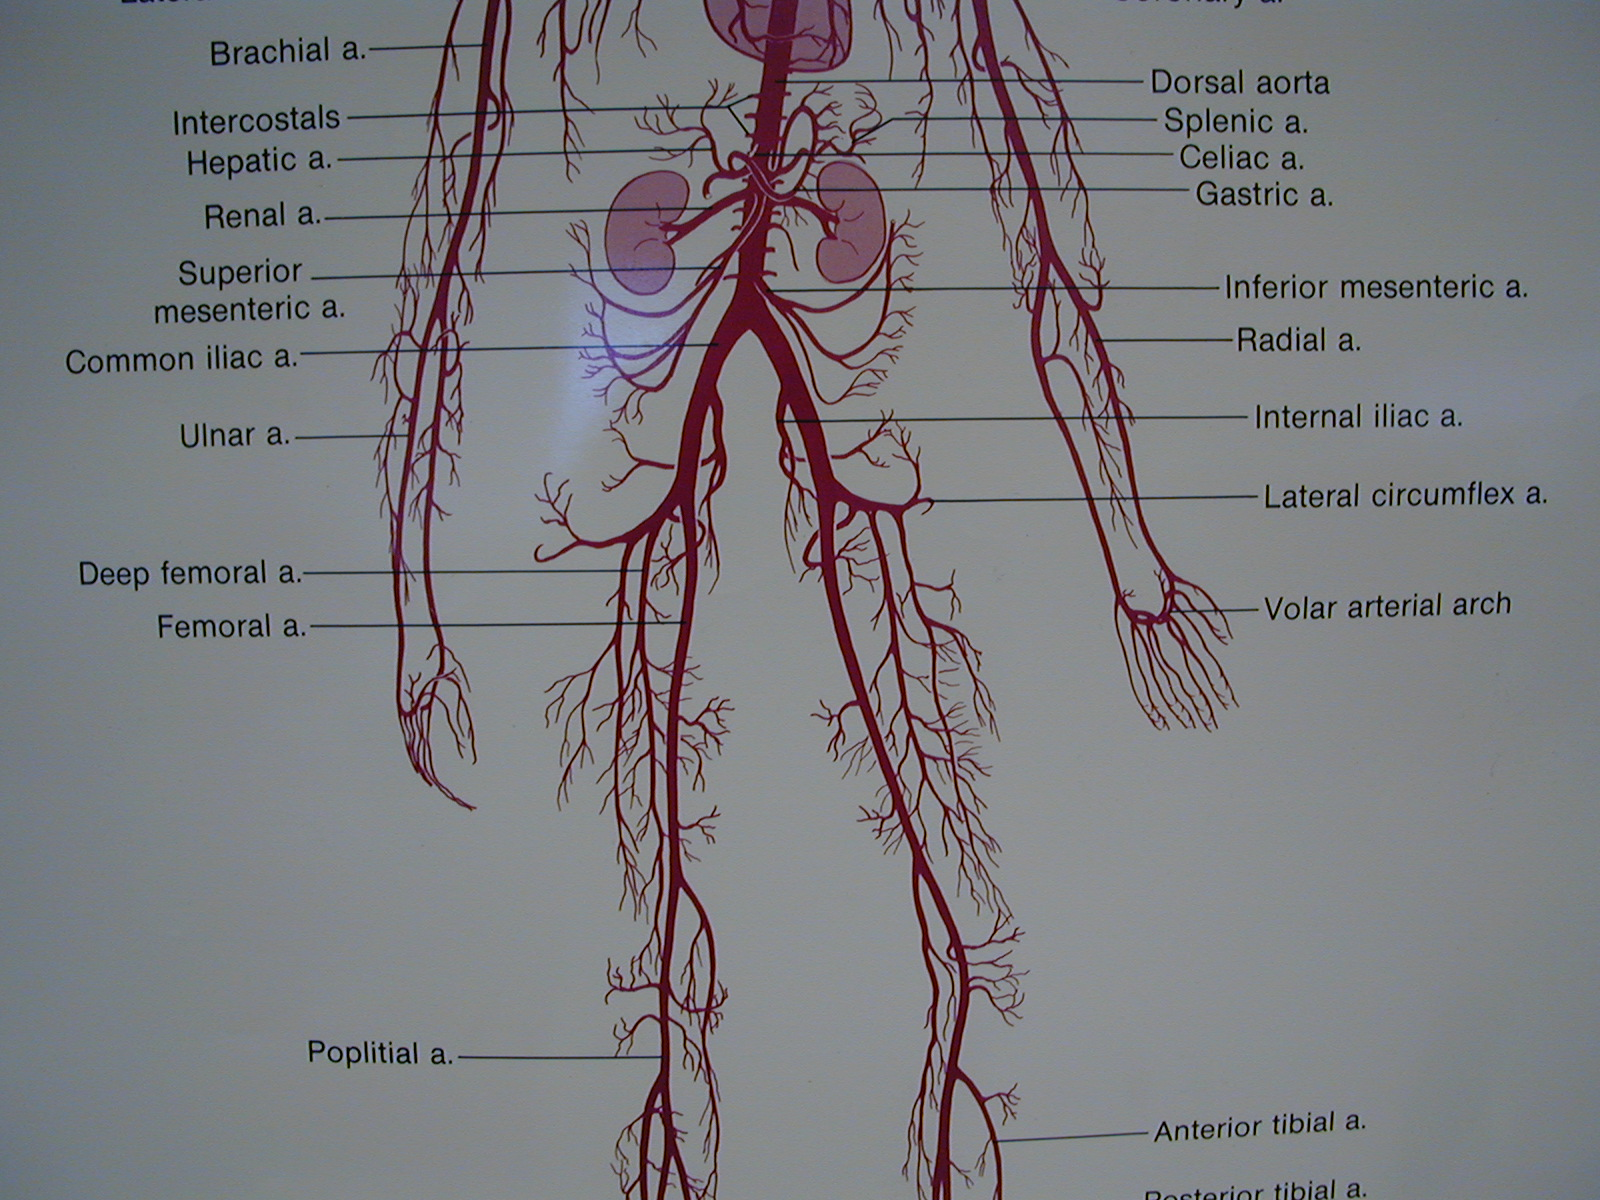 Circ Vessel Man Arterial Poster Middle Lower